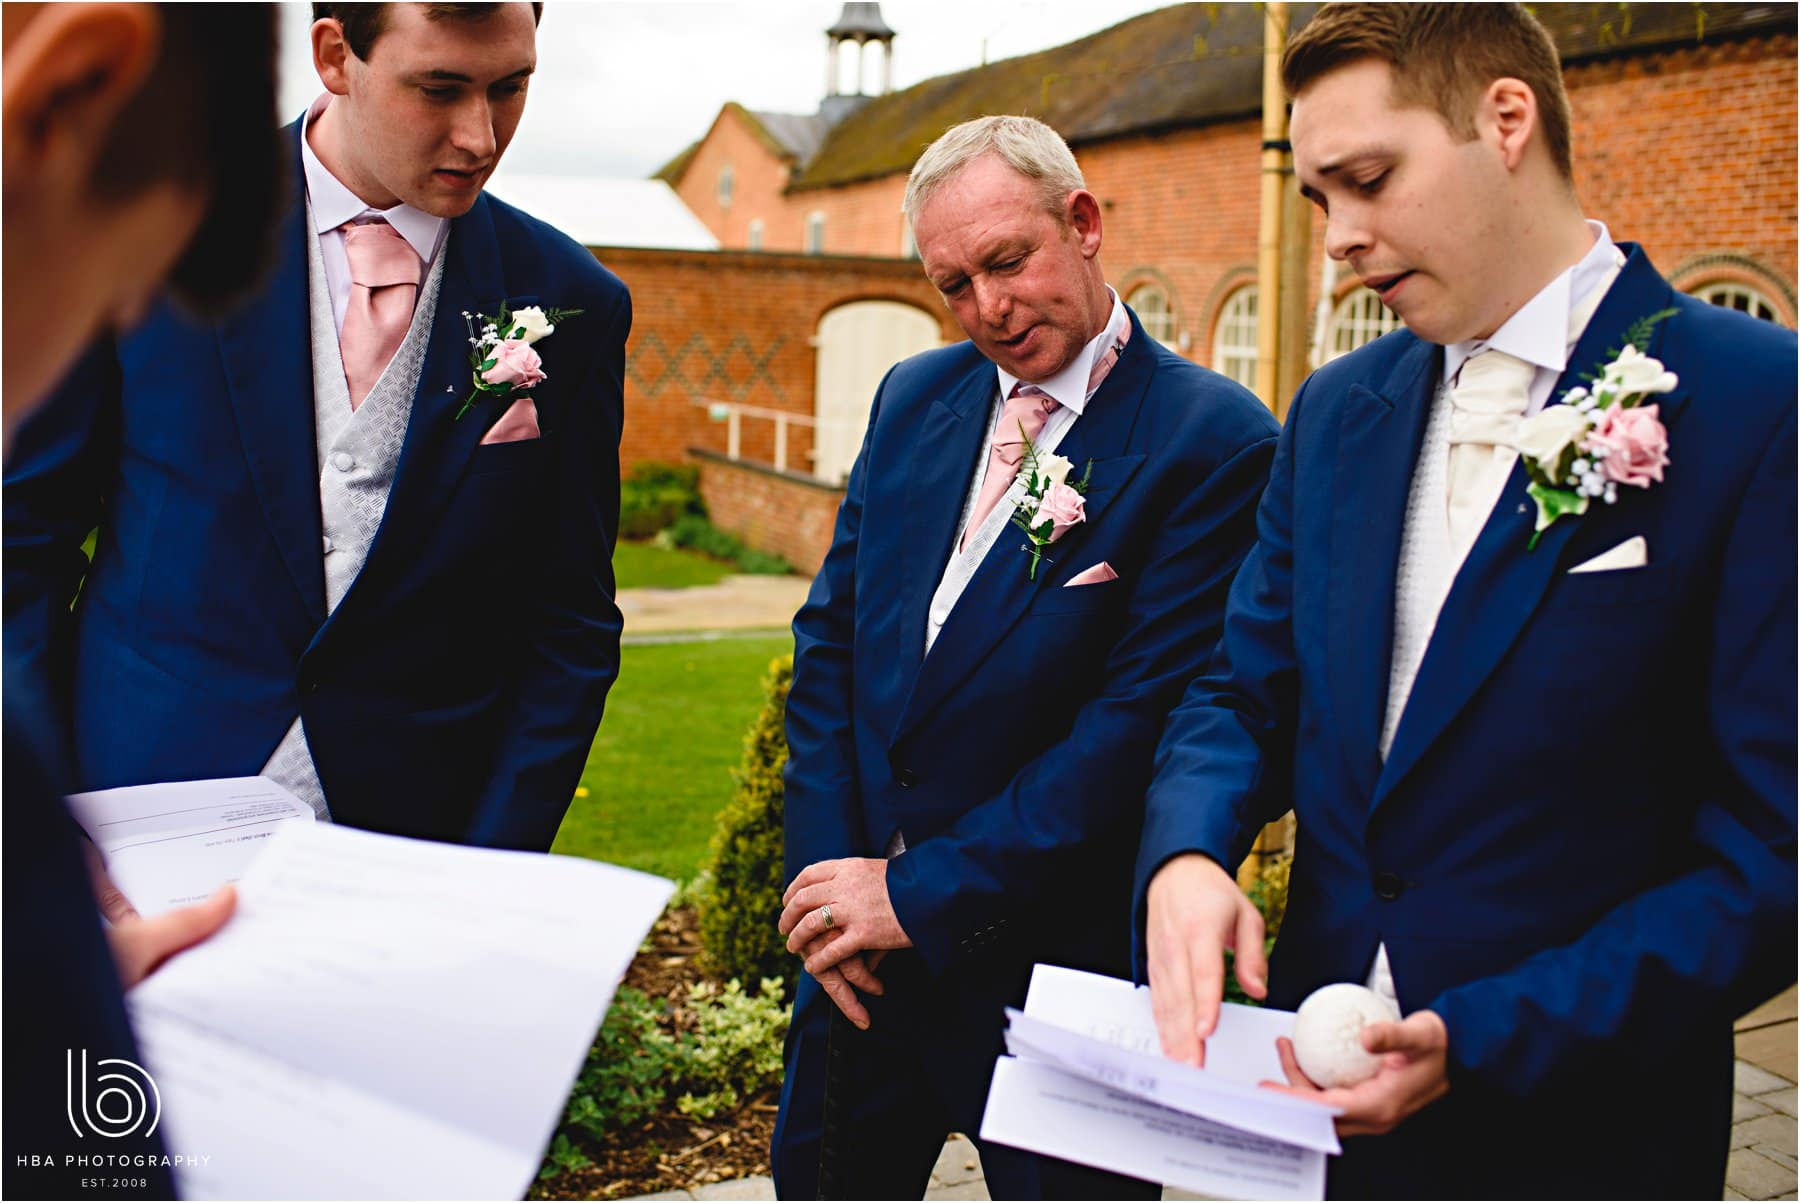 the groom and his men making plans